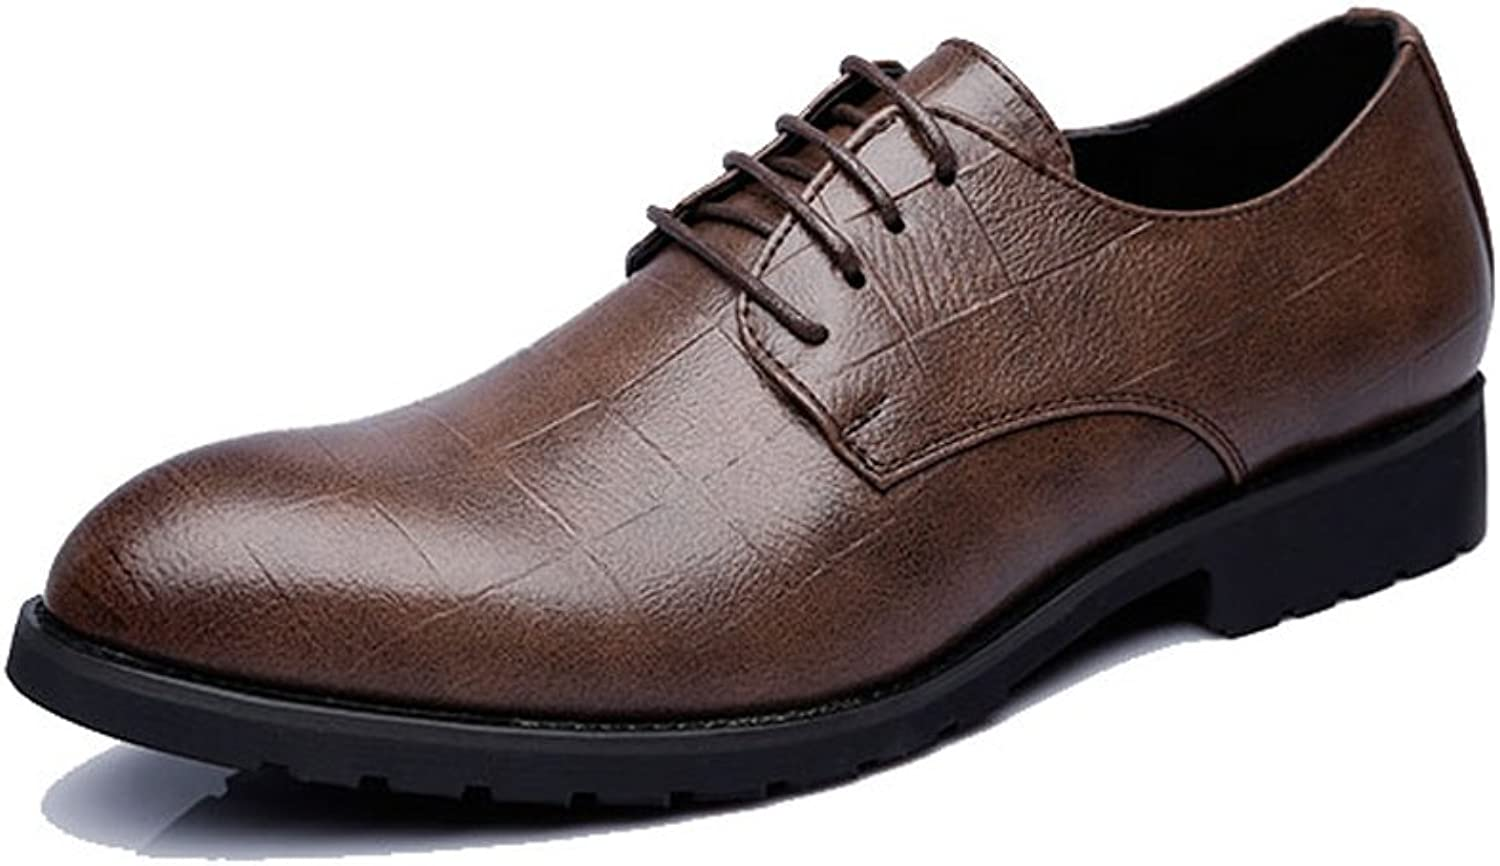 Men's Business PU Leather shoes Classic Lace Up Loafers Square Texture Low Top Oxfords (color   Darkbrown, Size   9.5 UK)